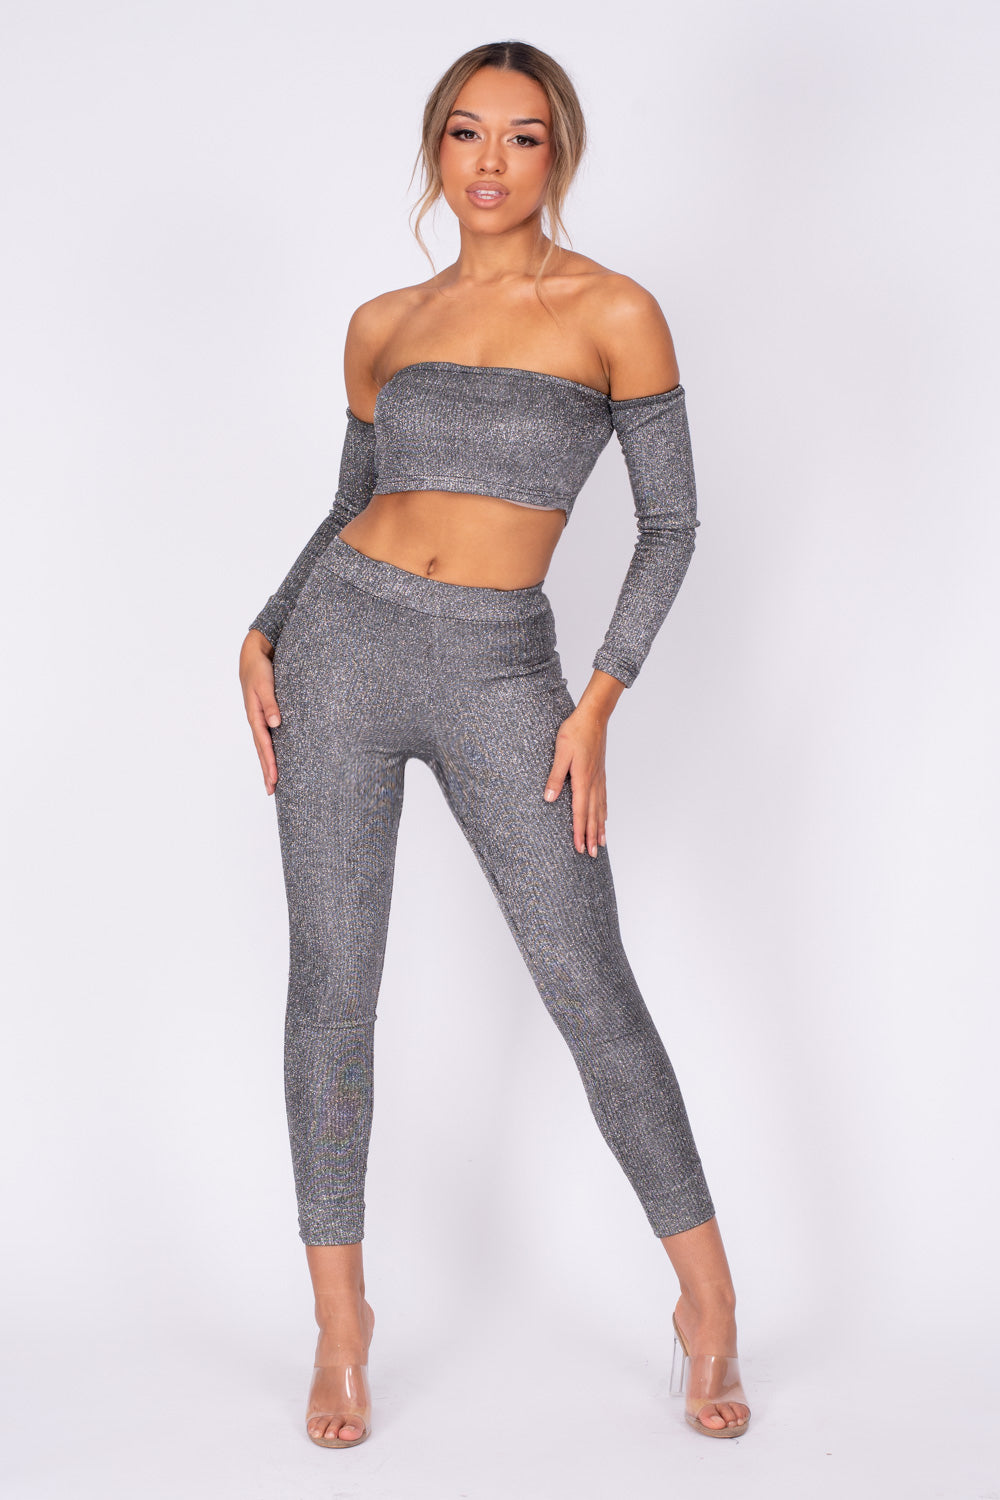 Havana Black Silver Metallic Glitter Two Piece Leggings Co-ord Set